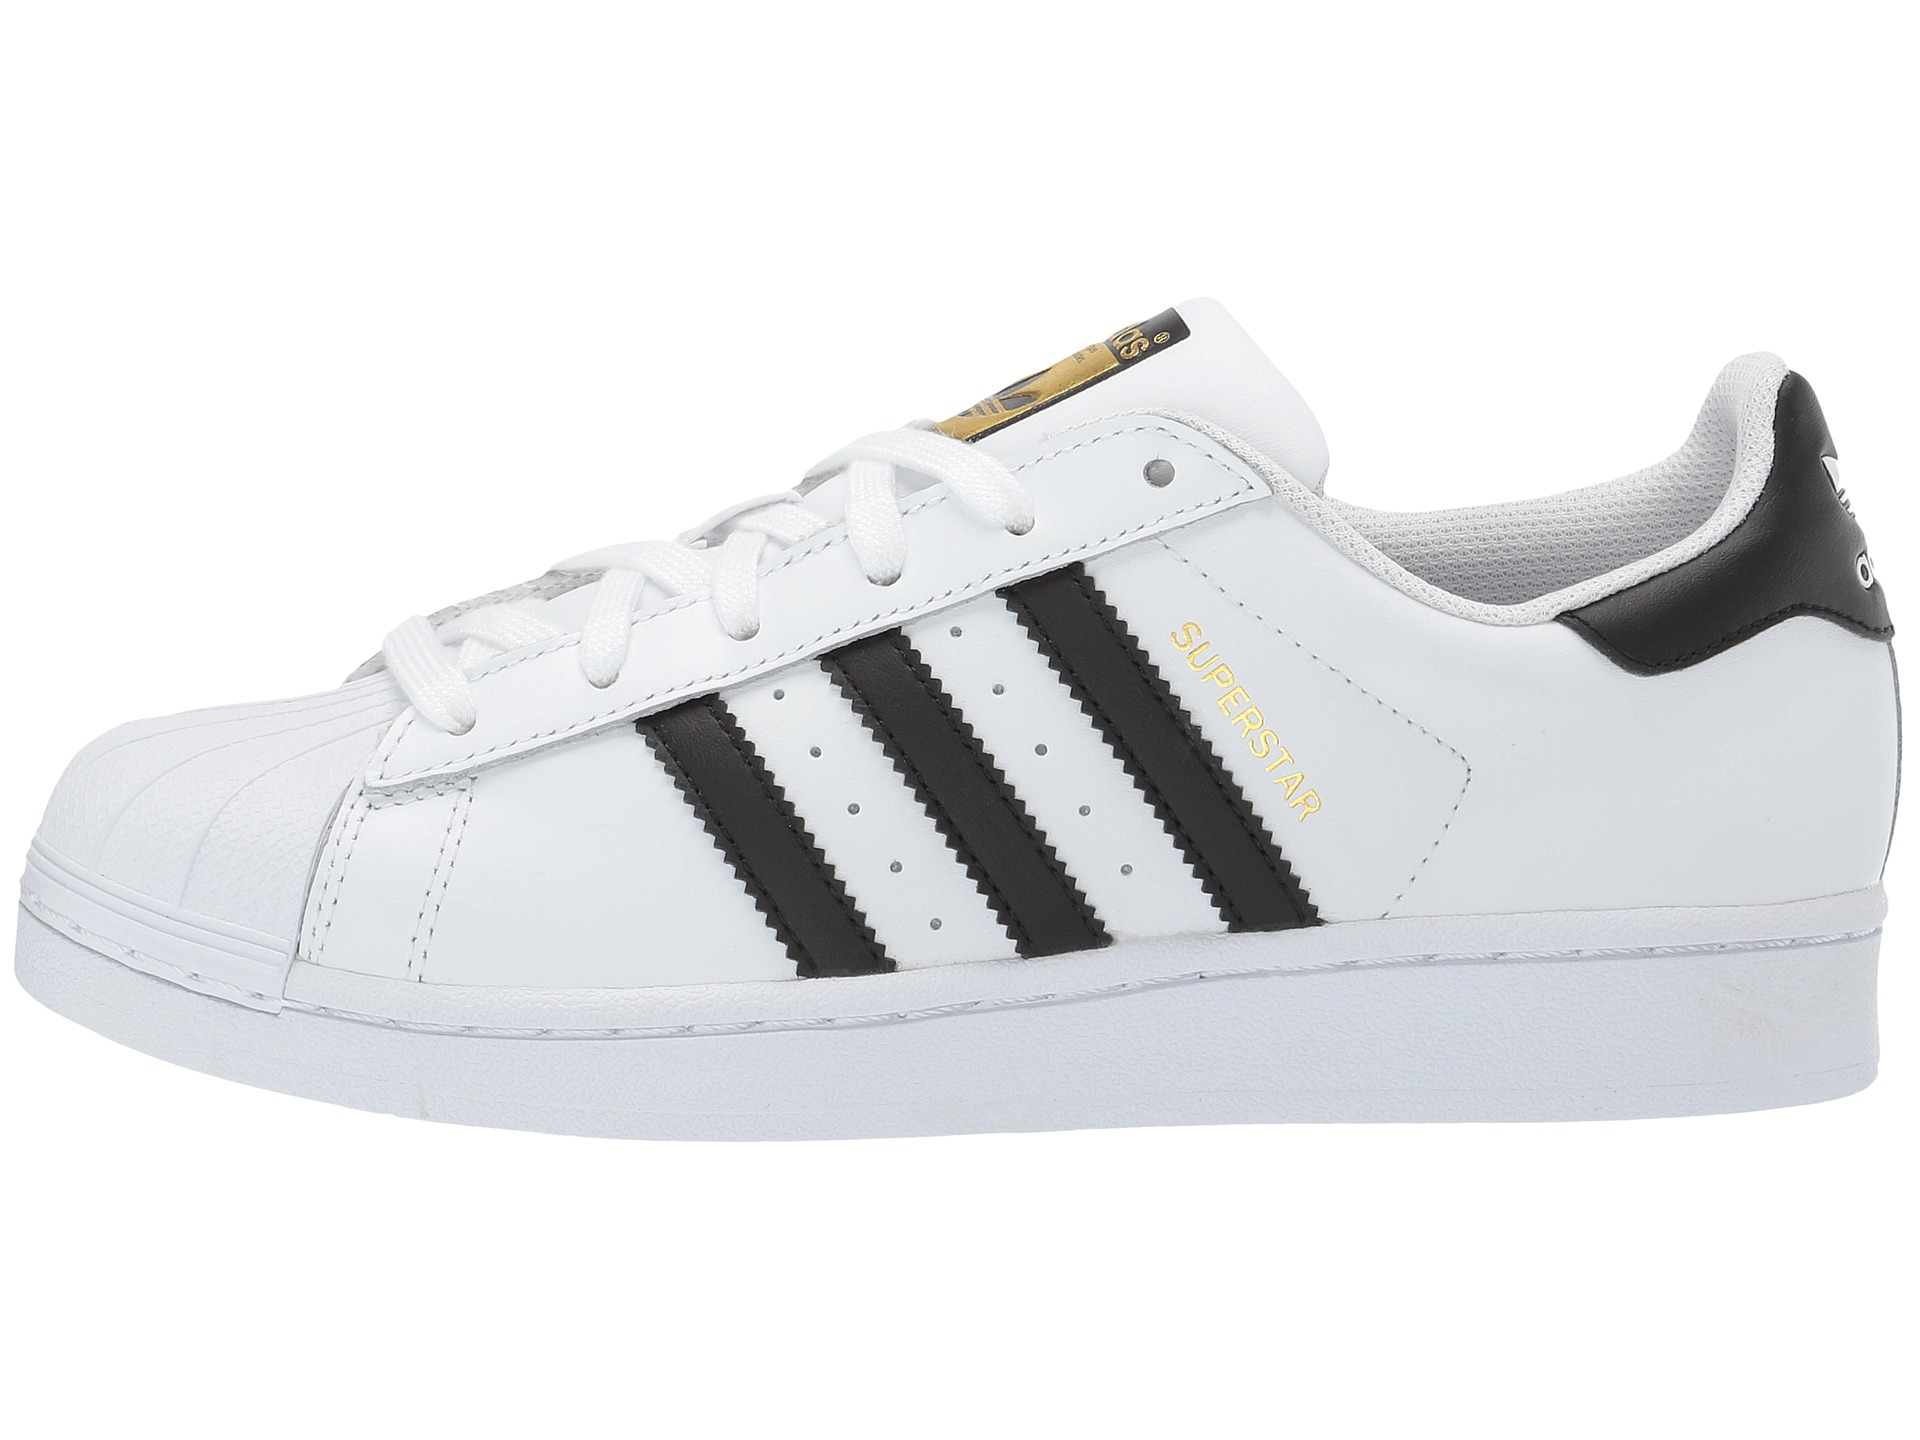 sneakers for cheap fde2c 09647 ... for adidas Ambition PowerBounce 3 Womens Running Shoes, Size 8.5 at.  zappos adidas superstar womens